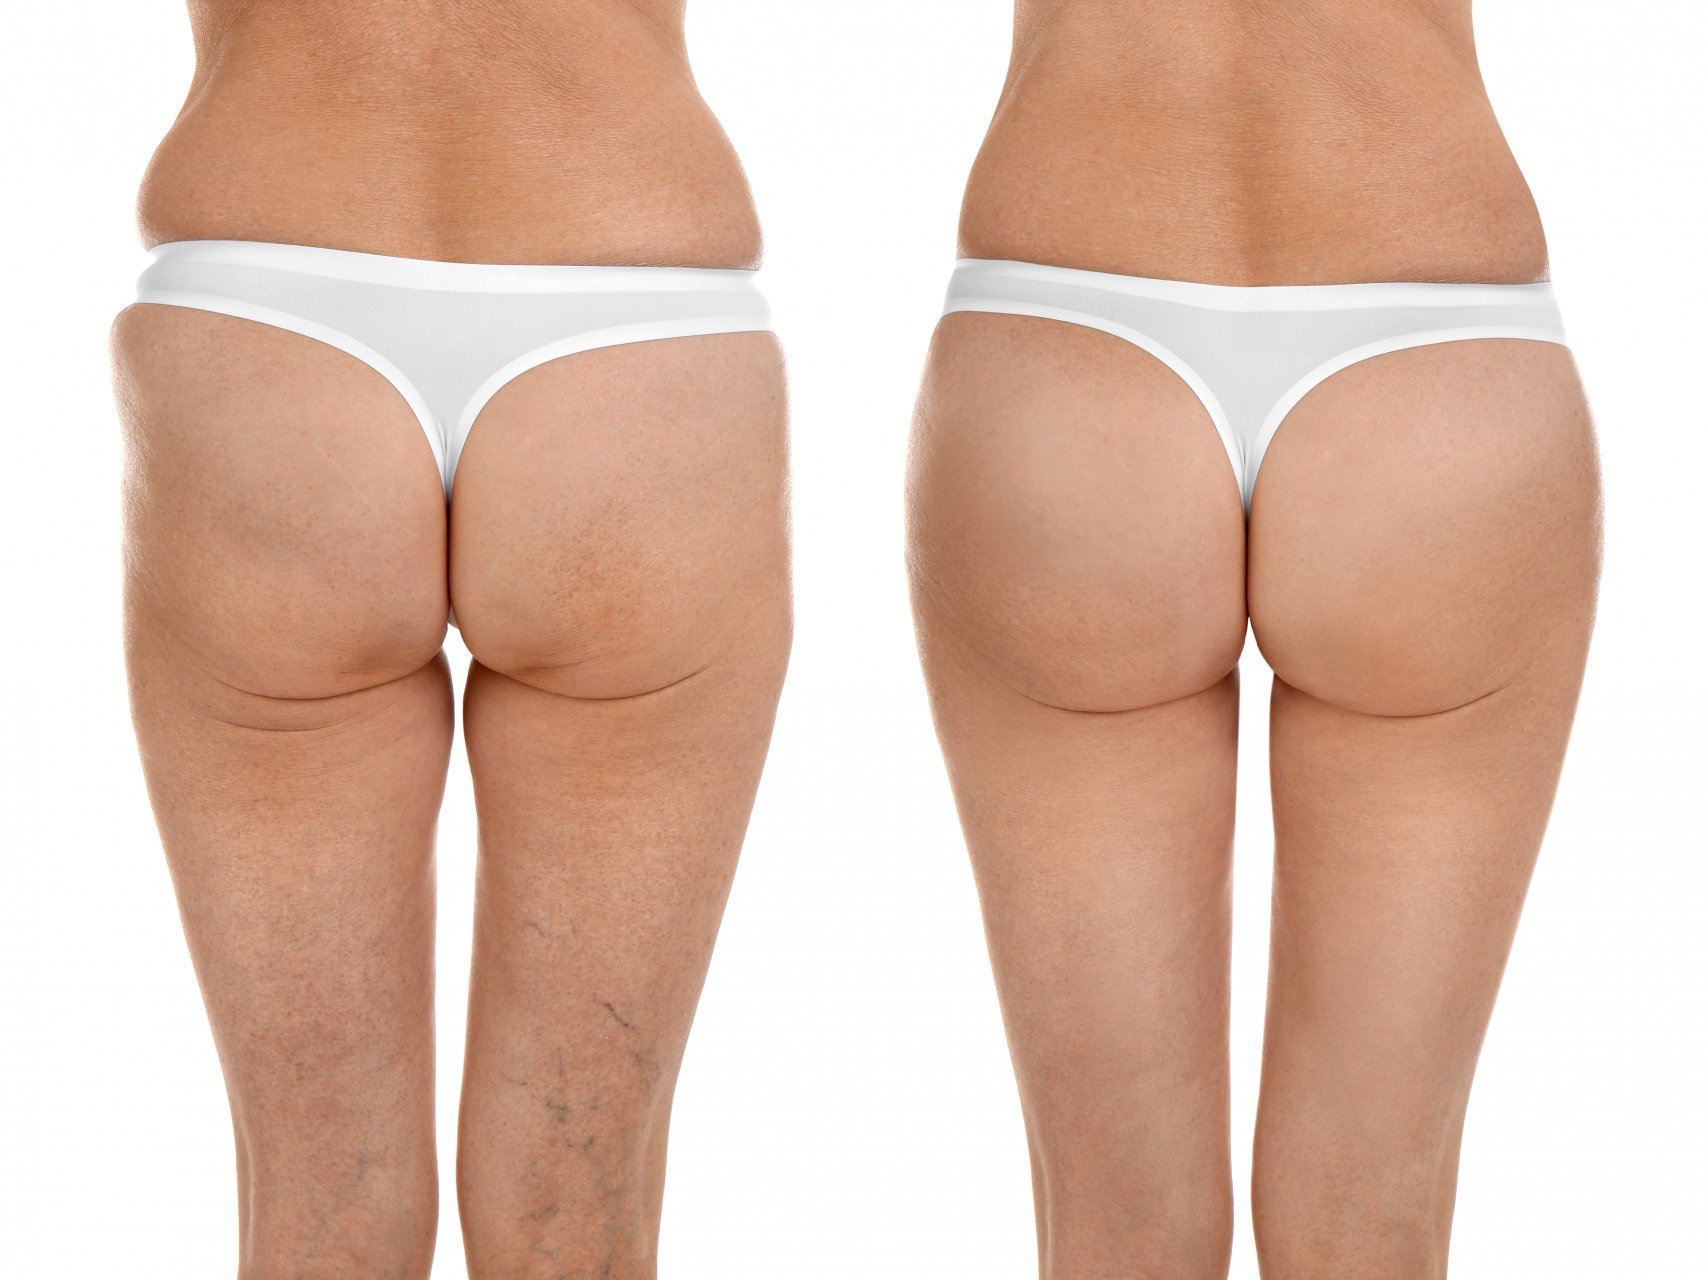 FAQ liposuction for lipedema patients | Treatment in Lithuania